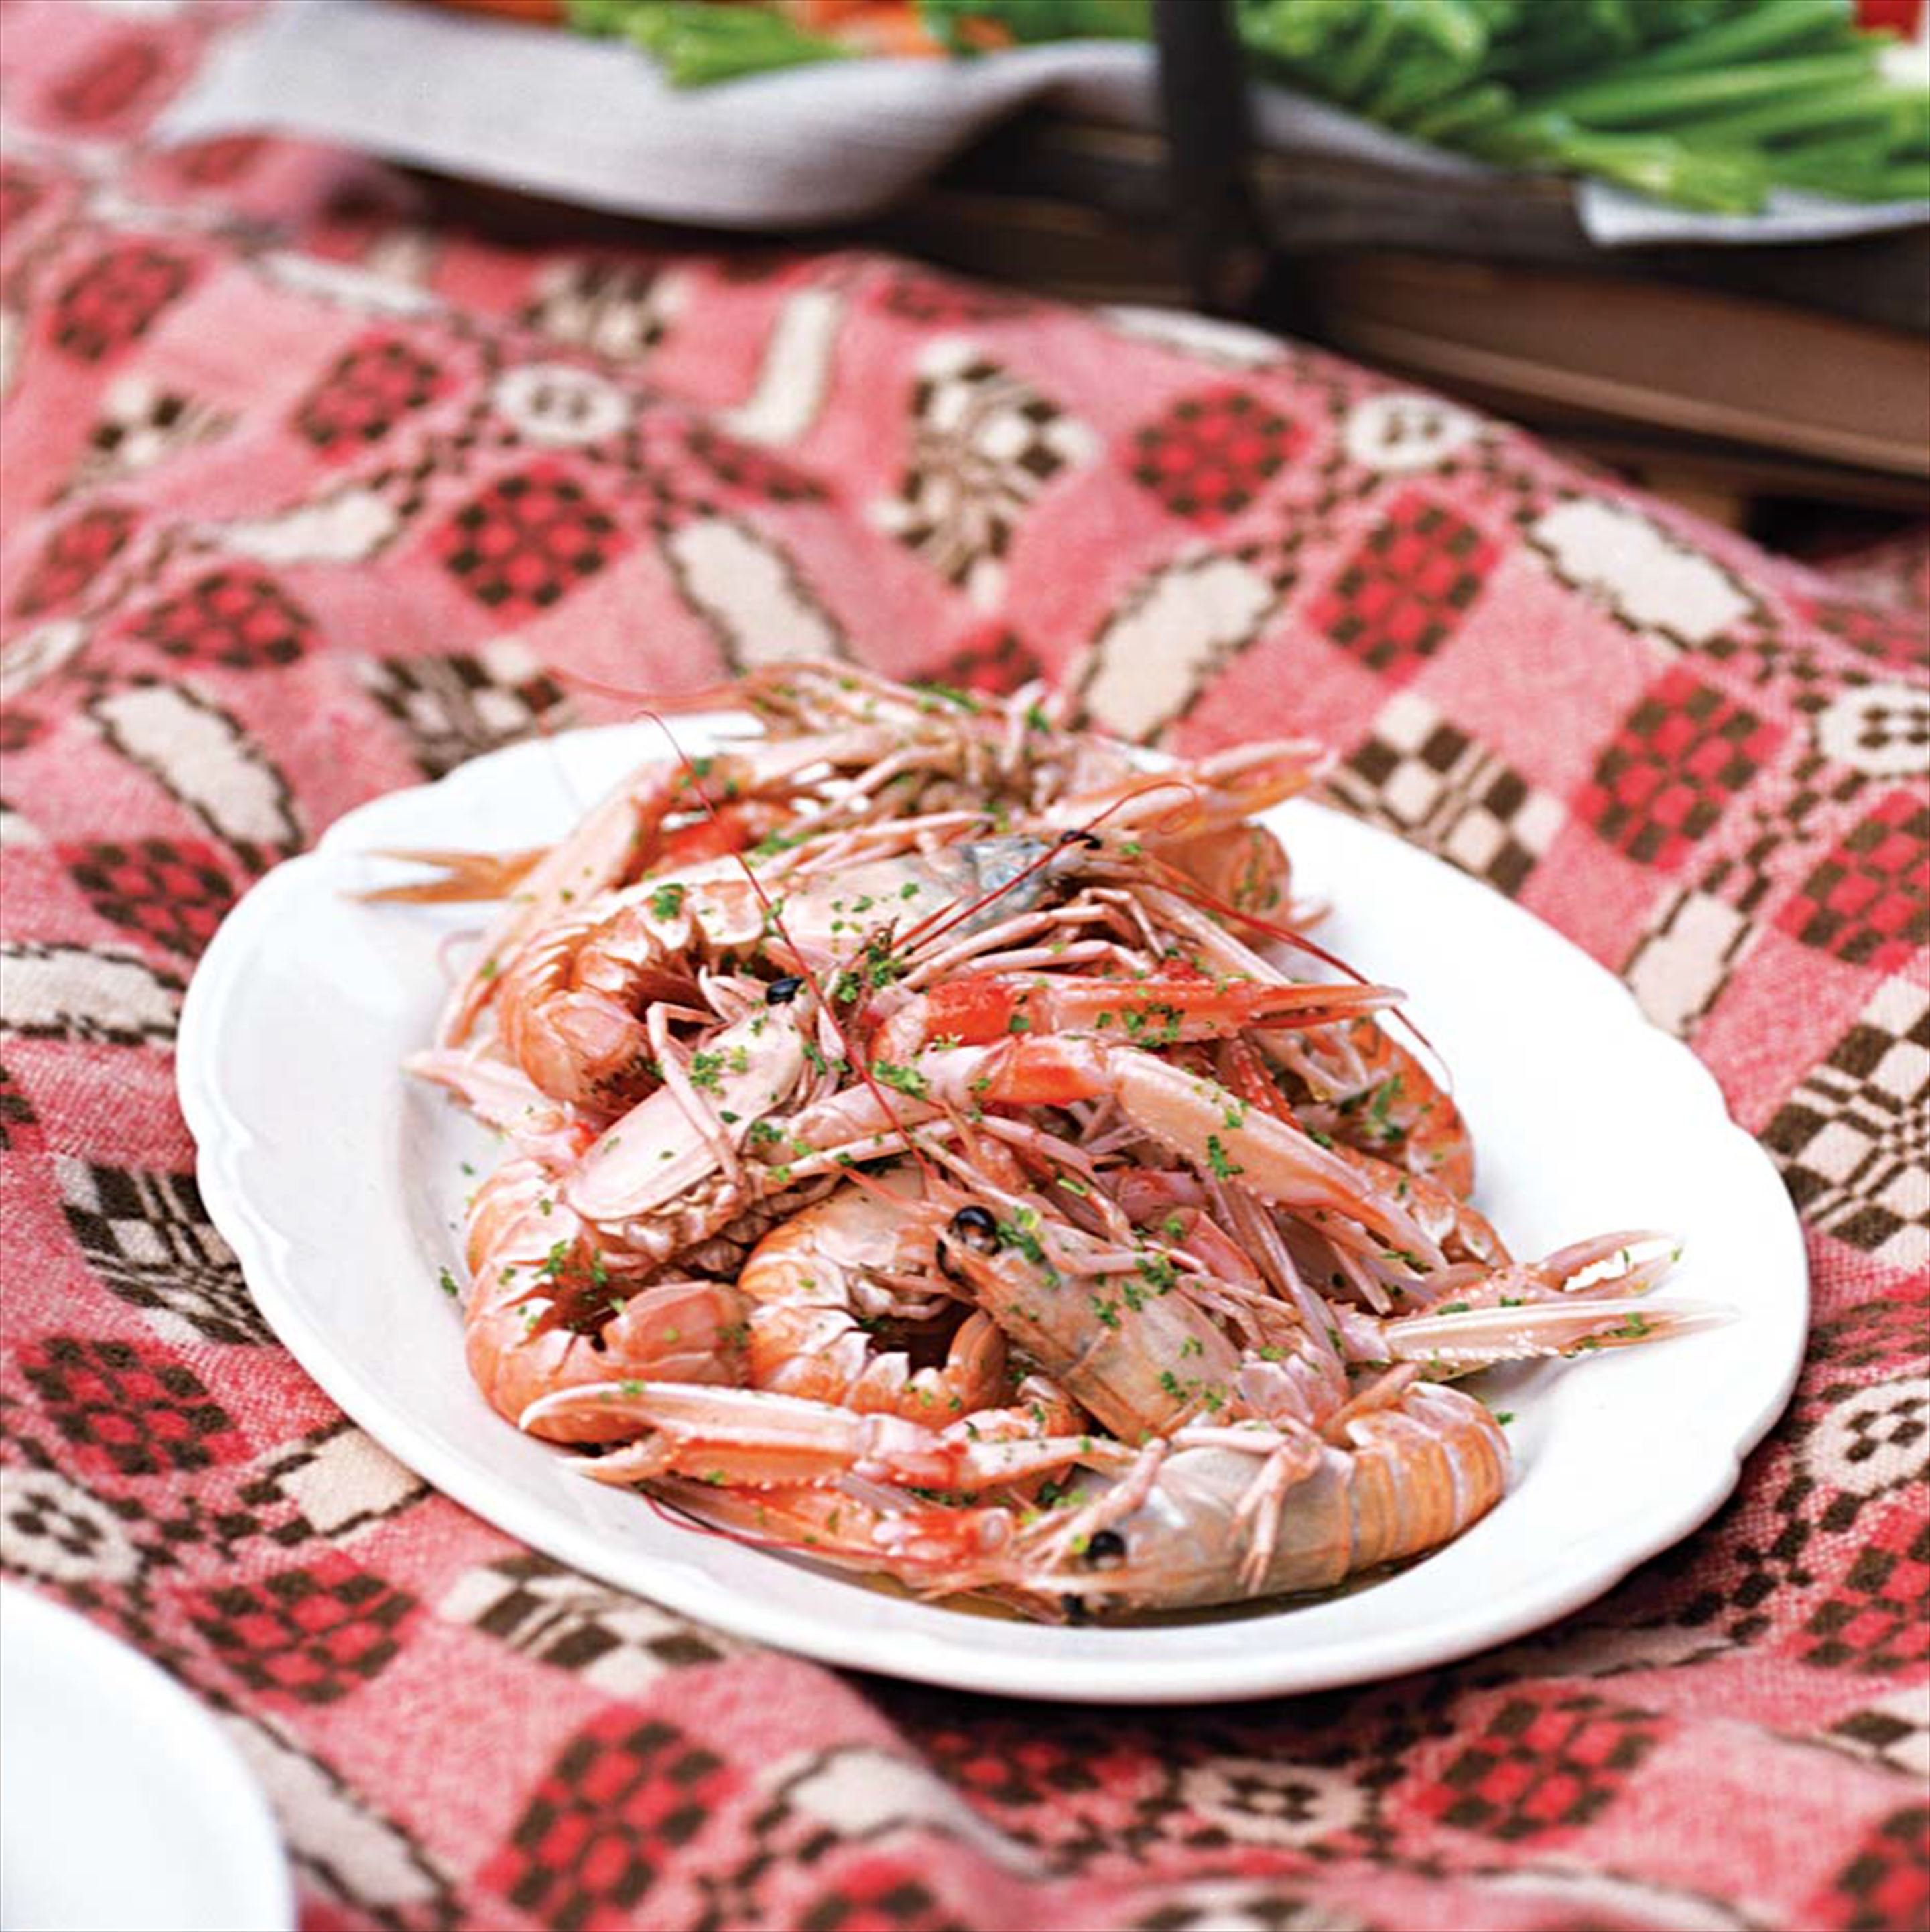 Poached langoustines with green goddess dressing